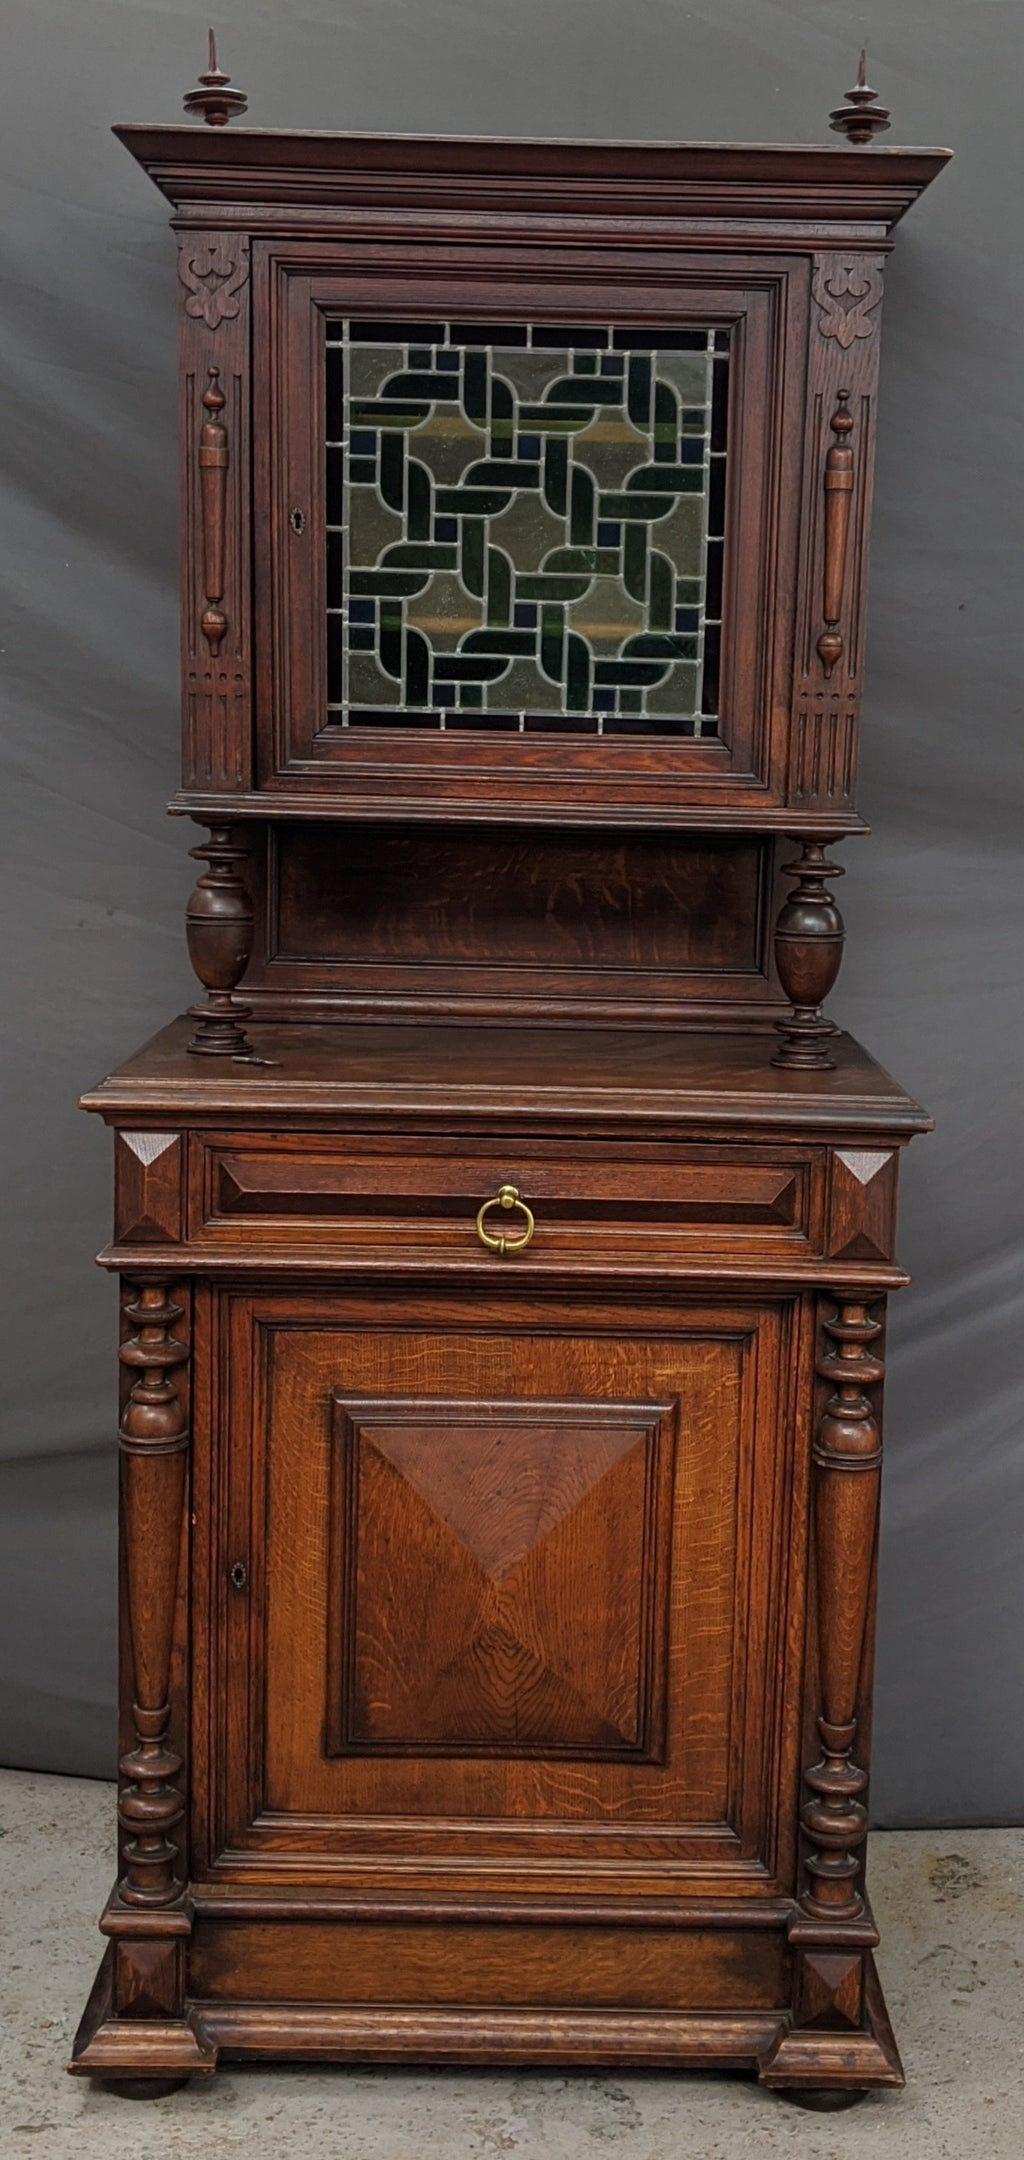 NARROW RUSTIC OAK BUFFET WITH STAINED GLASS TOP DOOR